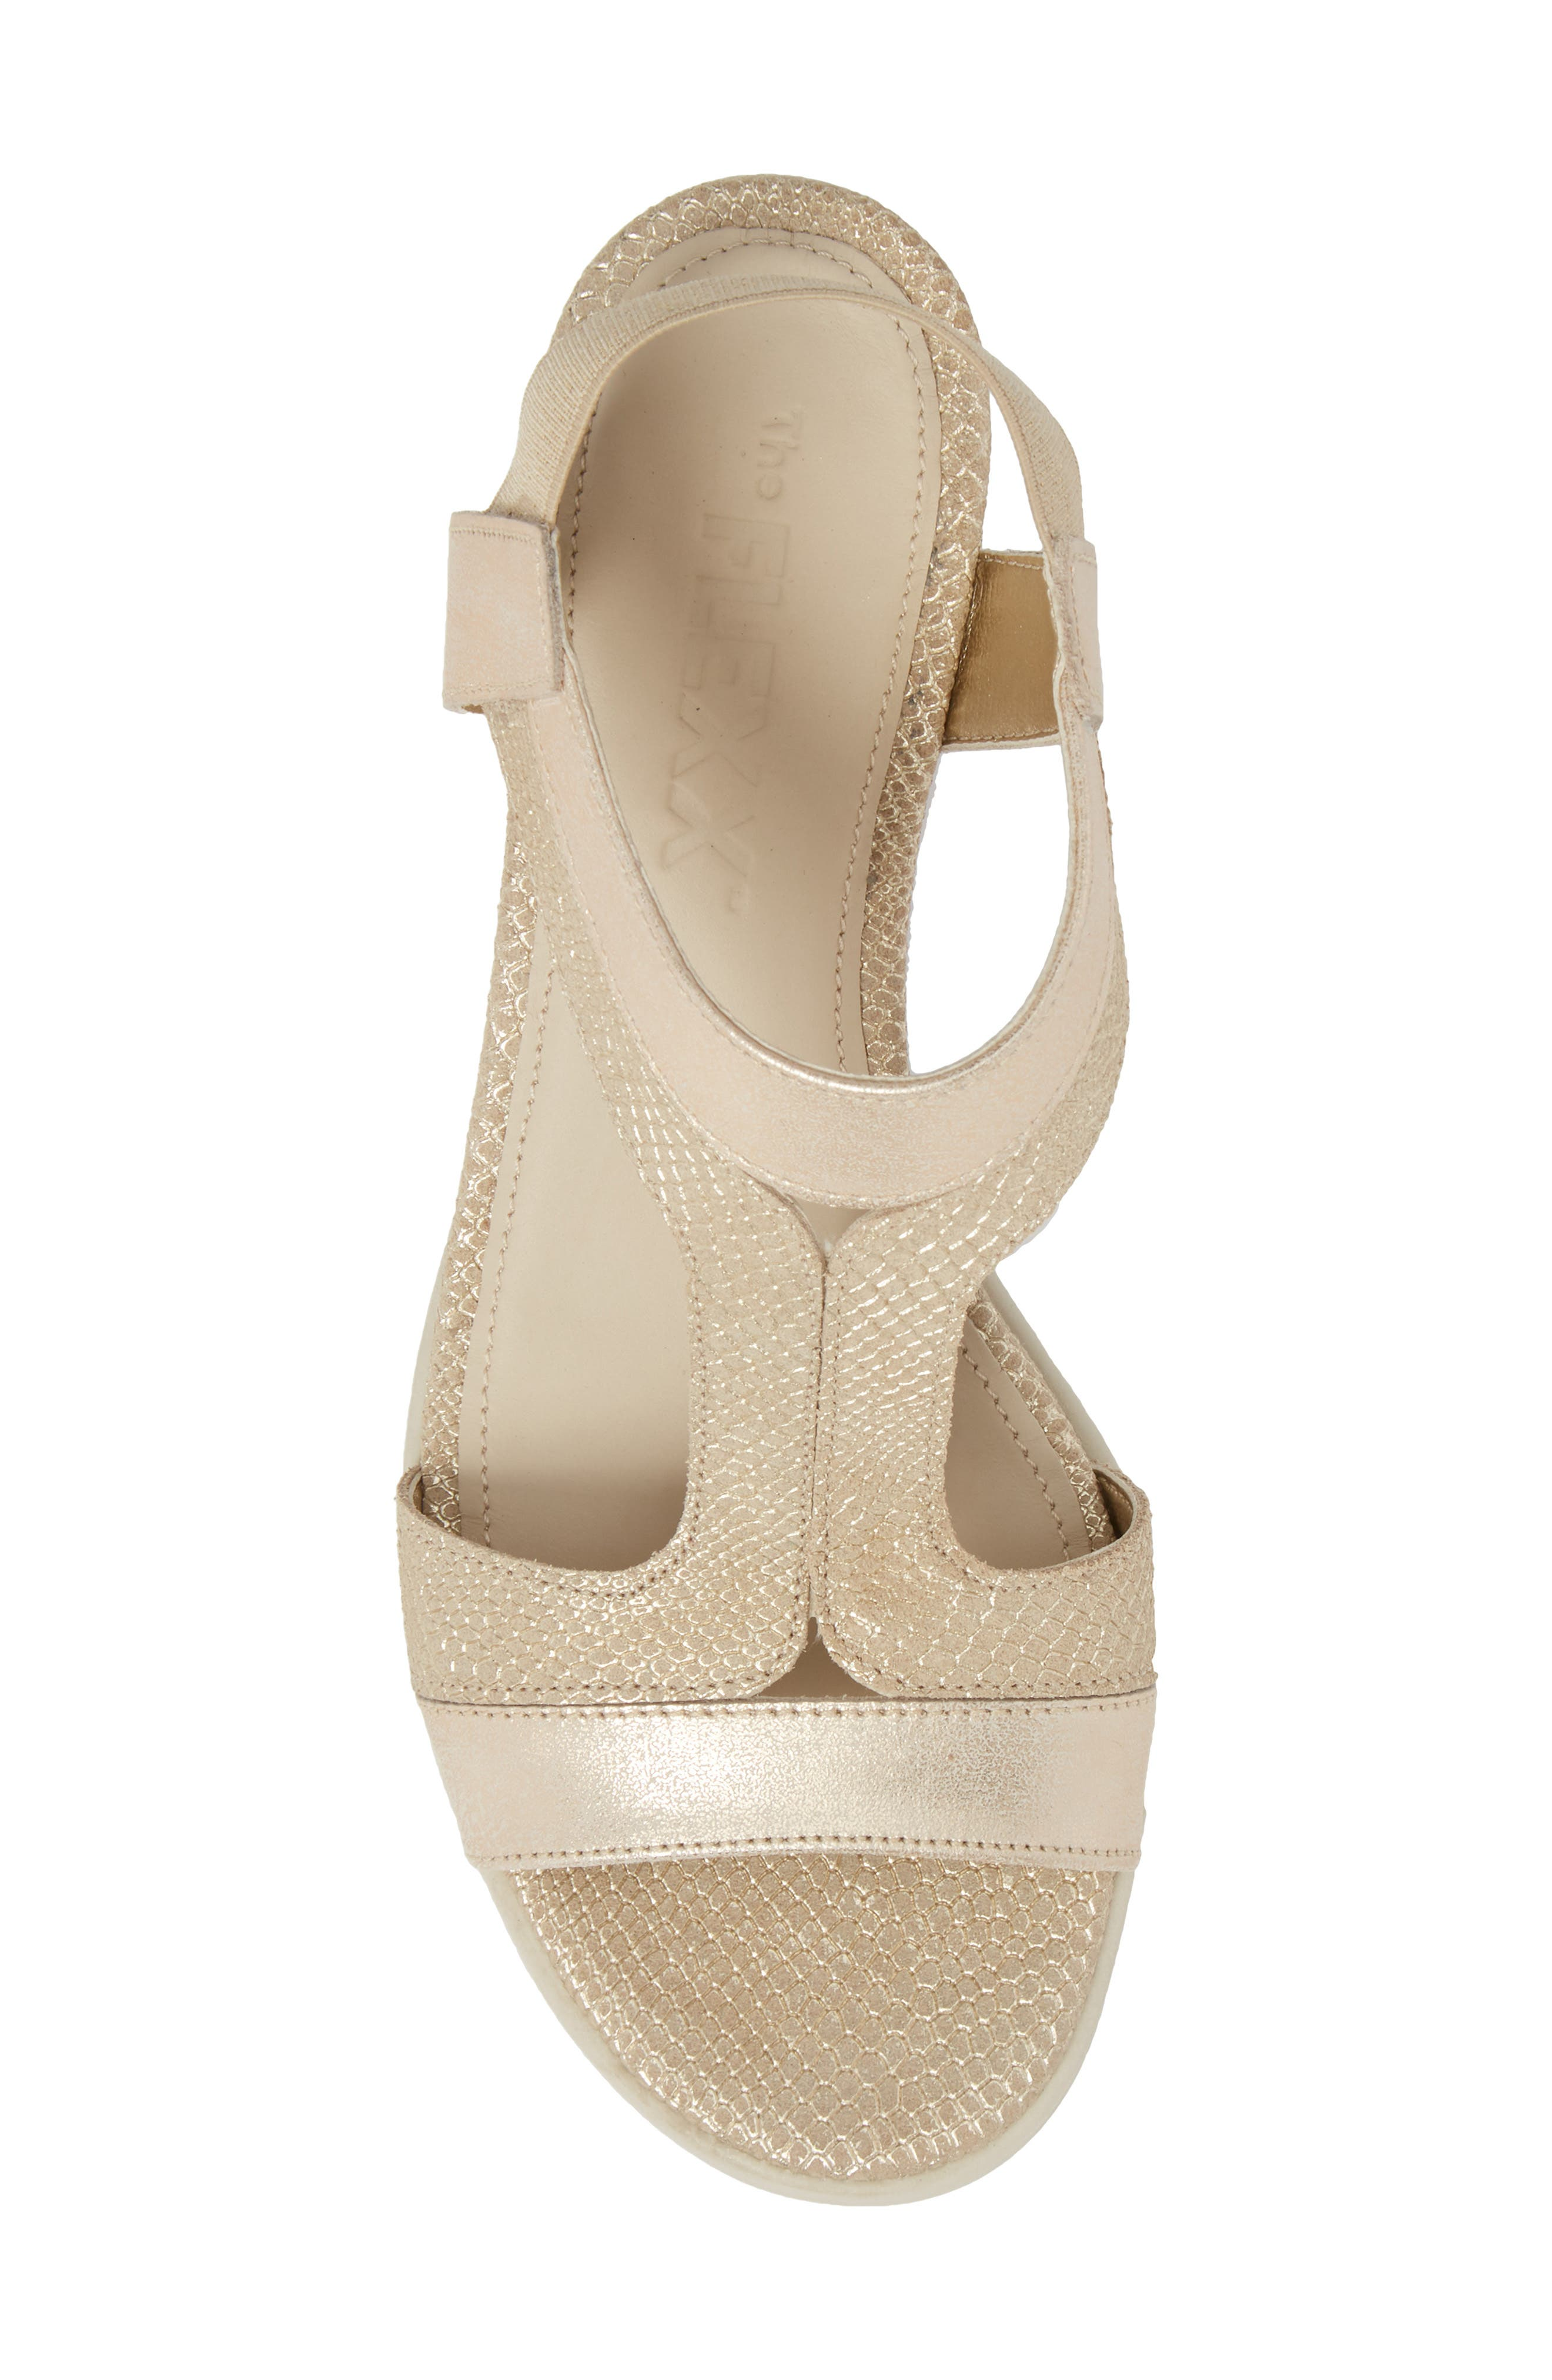 Give A Hoot Wedge Sandal,                             Alternate thumbnail 5, color,                             Gold Leather